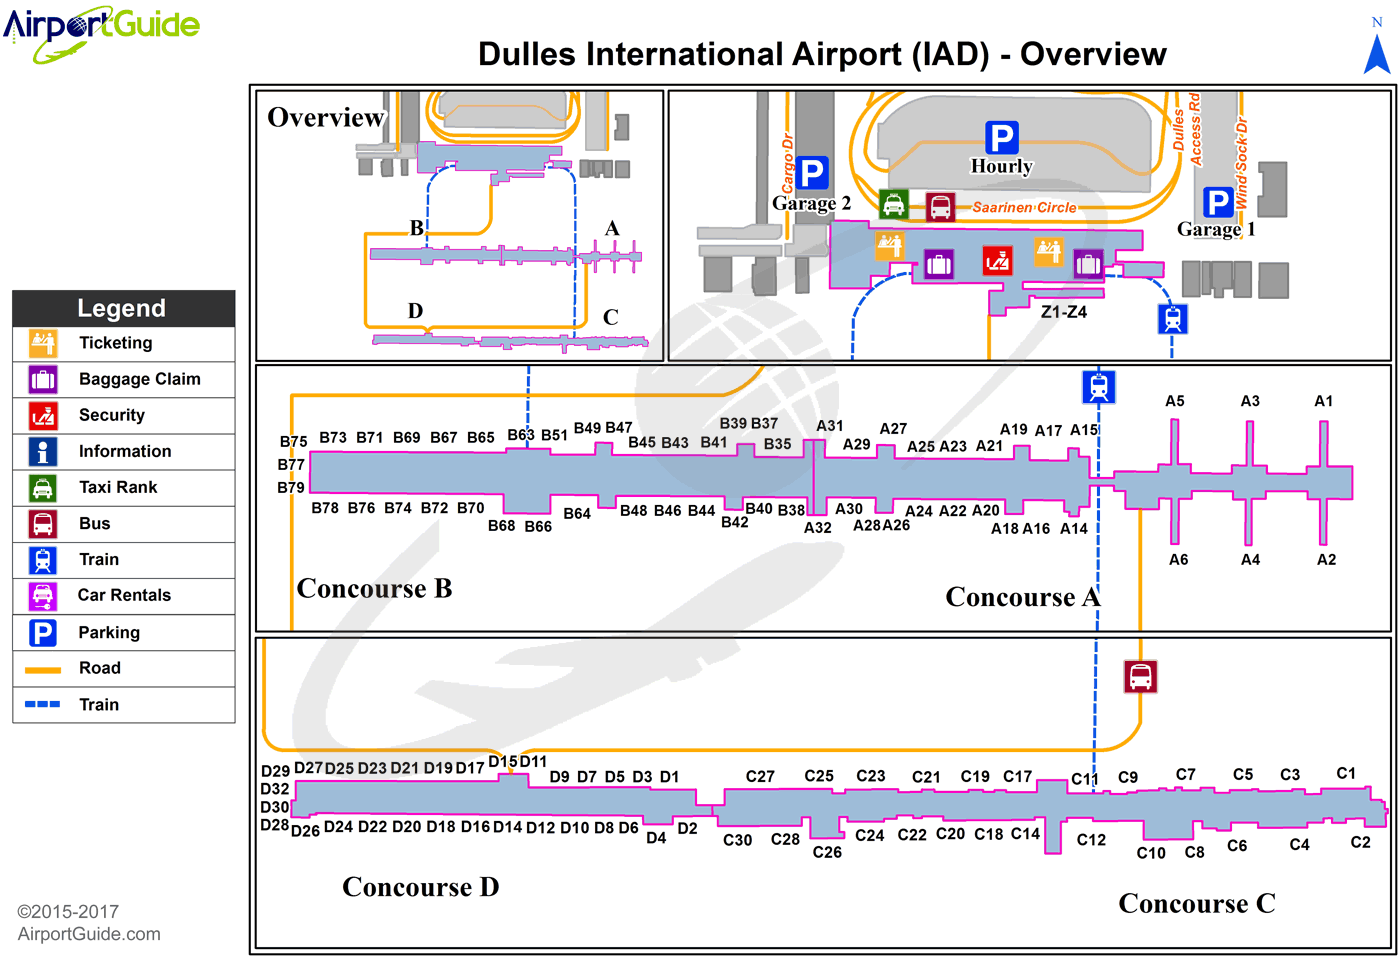 IAD Airport Terminal Map - Overview